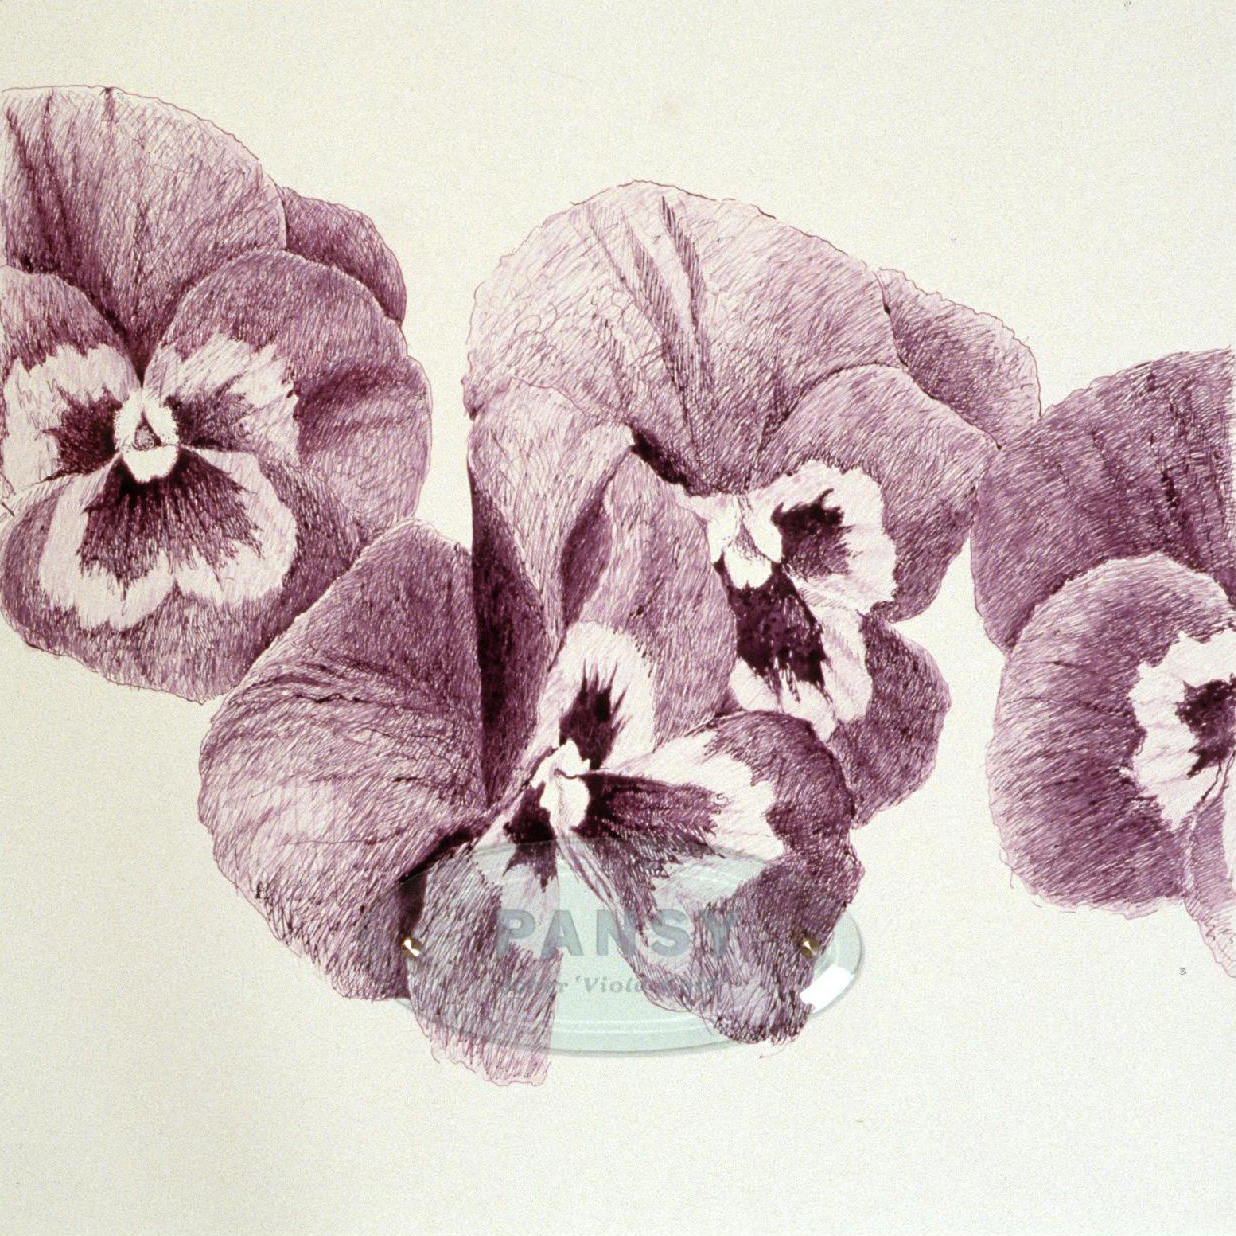 "Pansy ""Clear Violet,"" 20"" x 20"" (50.8cm x 50.8cm), ink on paper, sandblasted glass, bolts"